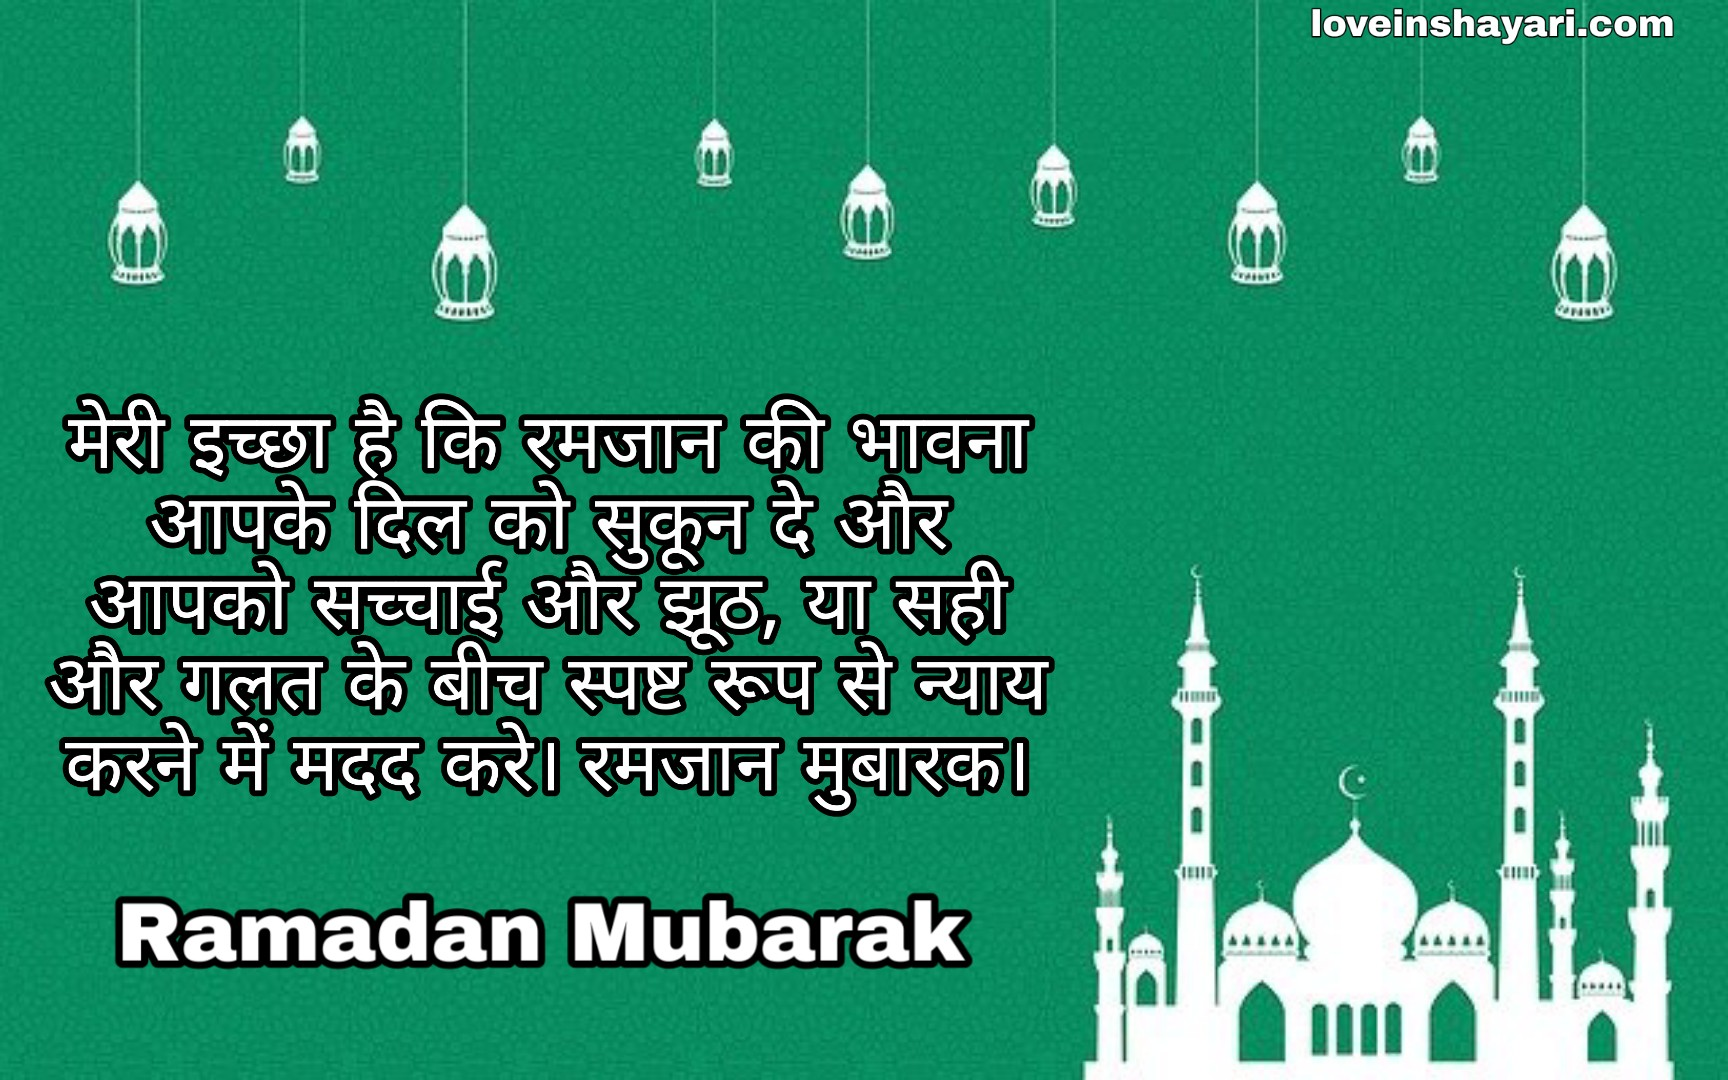 Photo of Ramadan wishes shayari quotes messages 2020